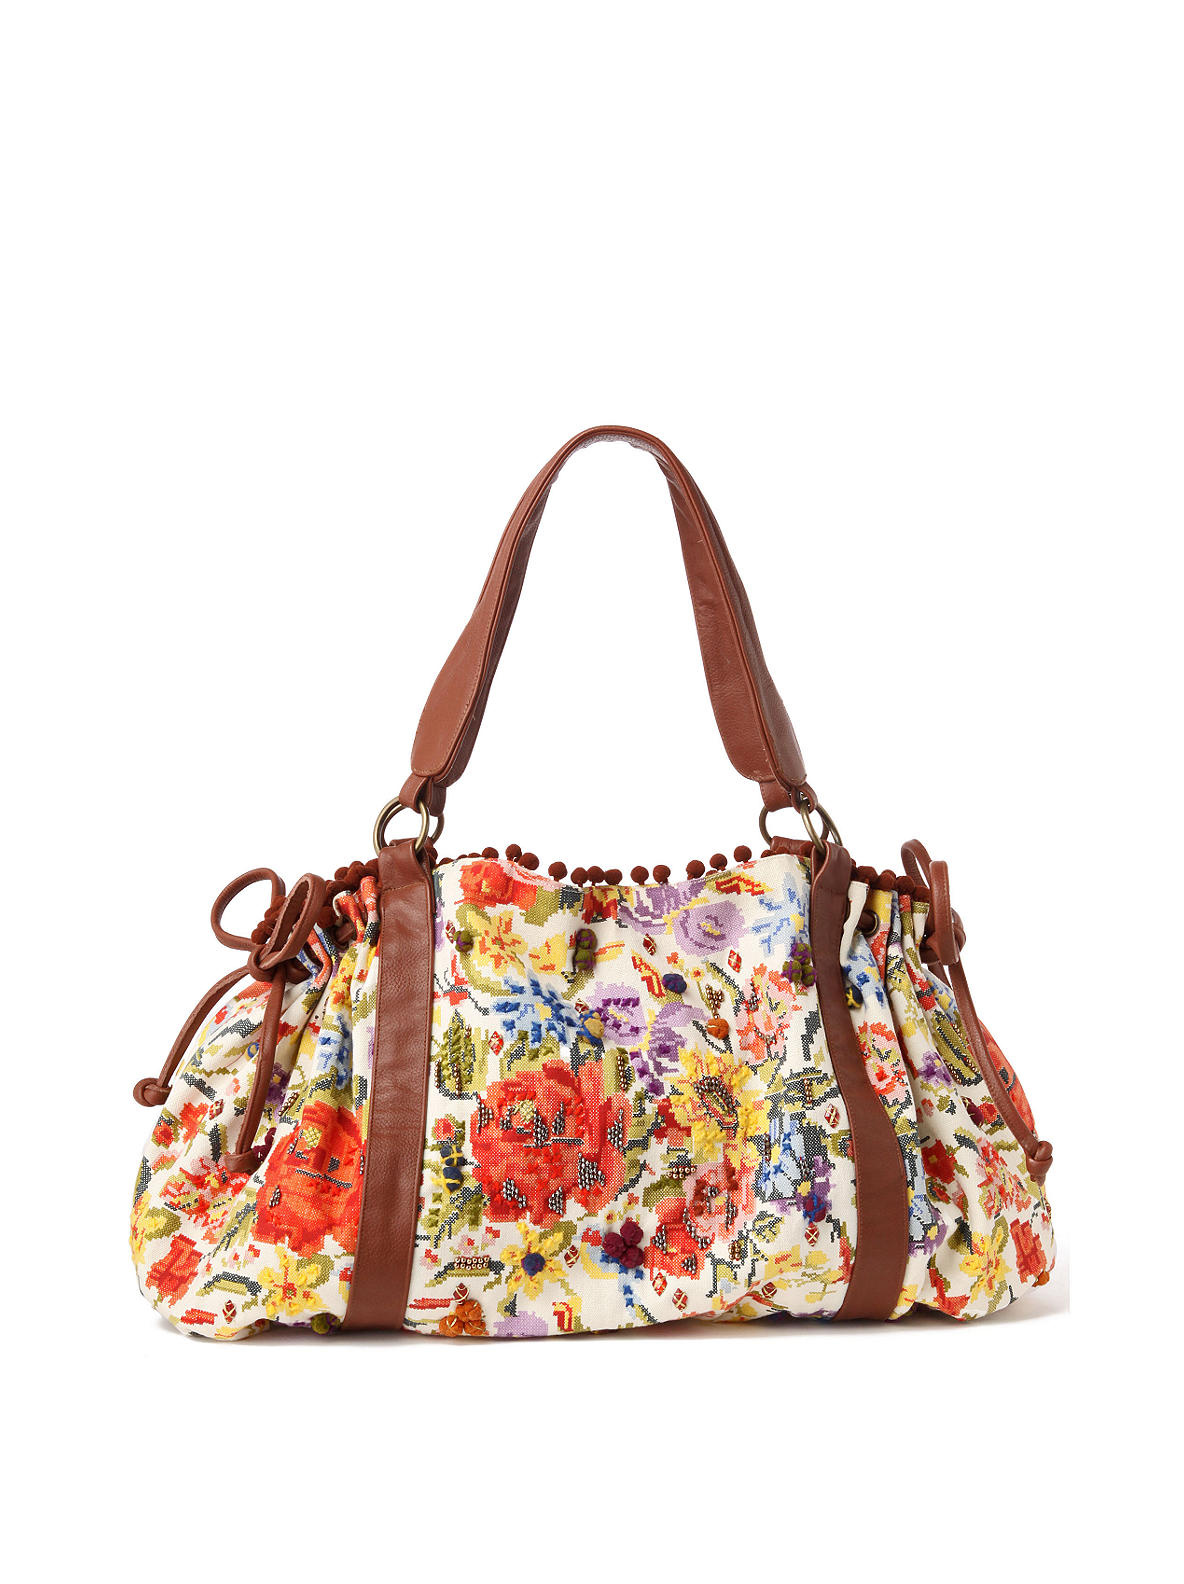 Nearly Needlepoint Satchel Anthropologie com from anthropologie.com